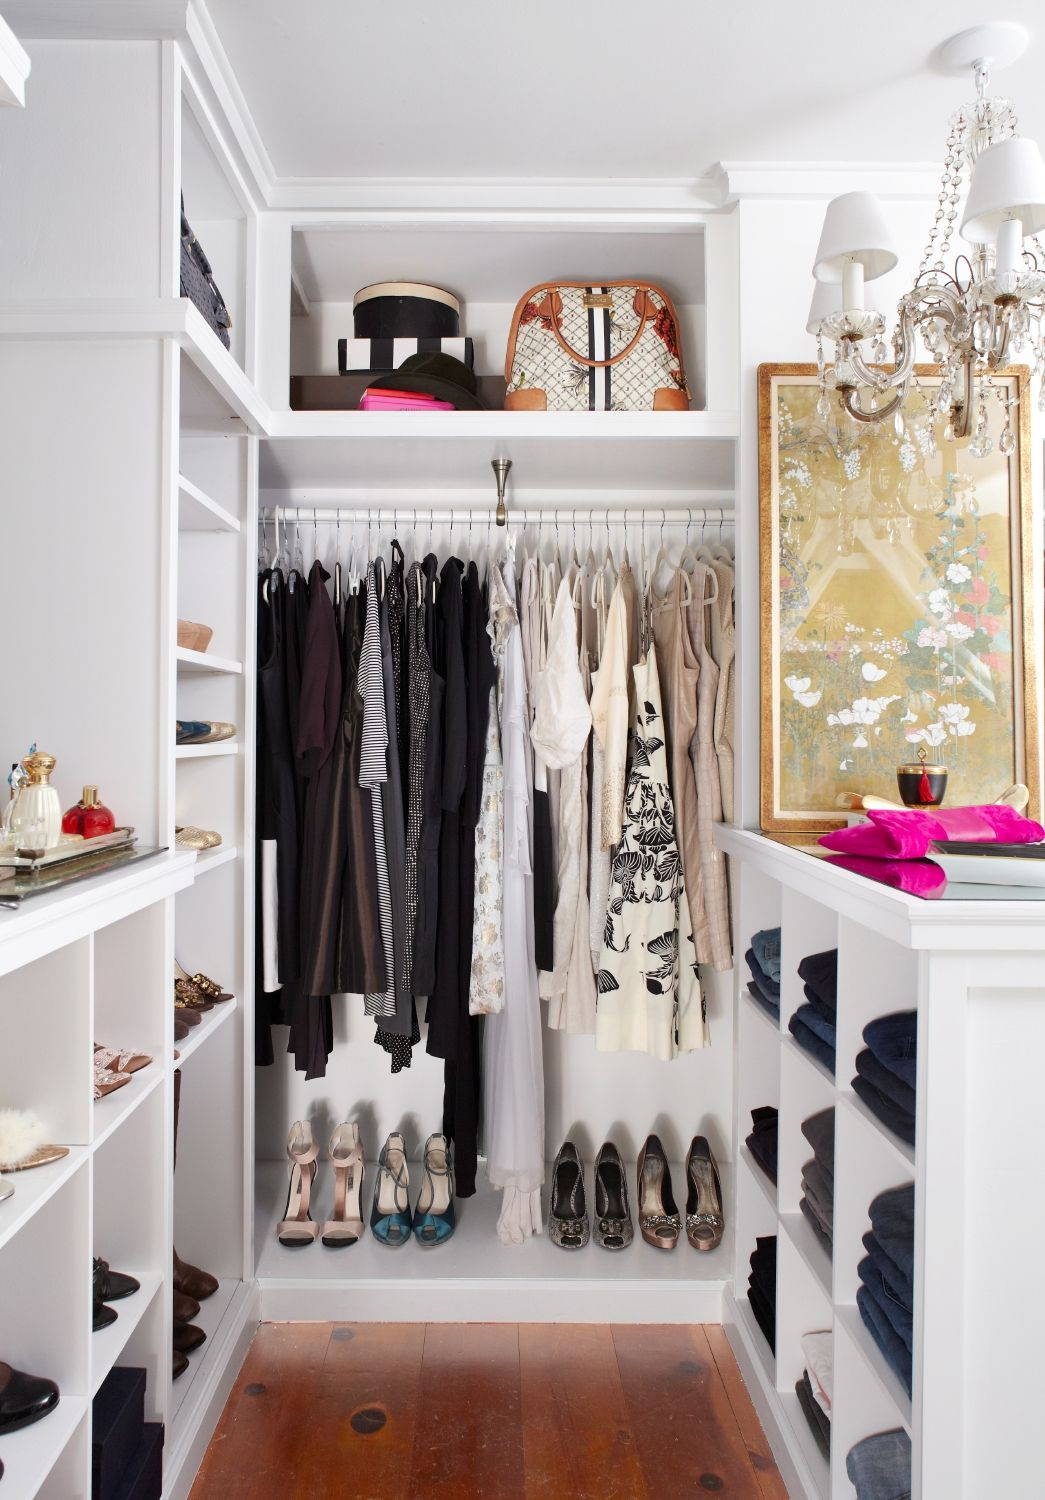 Superb Awesome Small Walk In Closet For Your Room #Closet #Roomideas